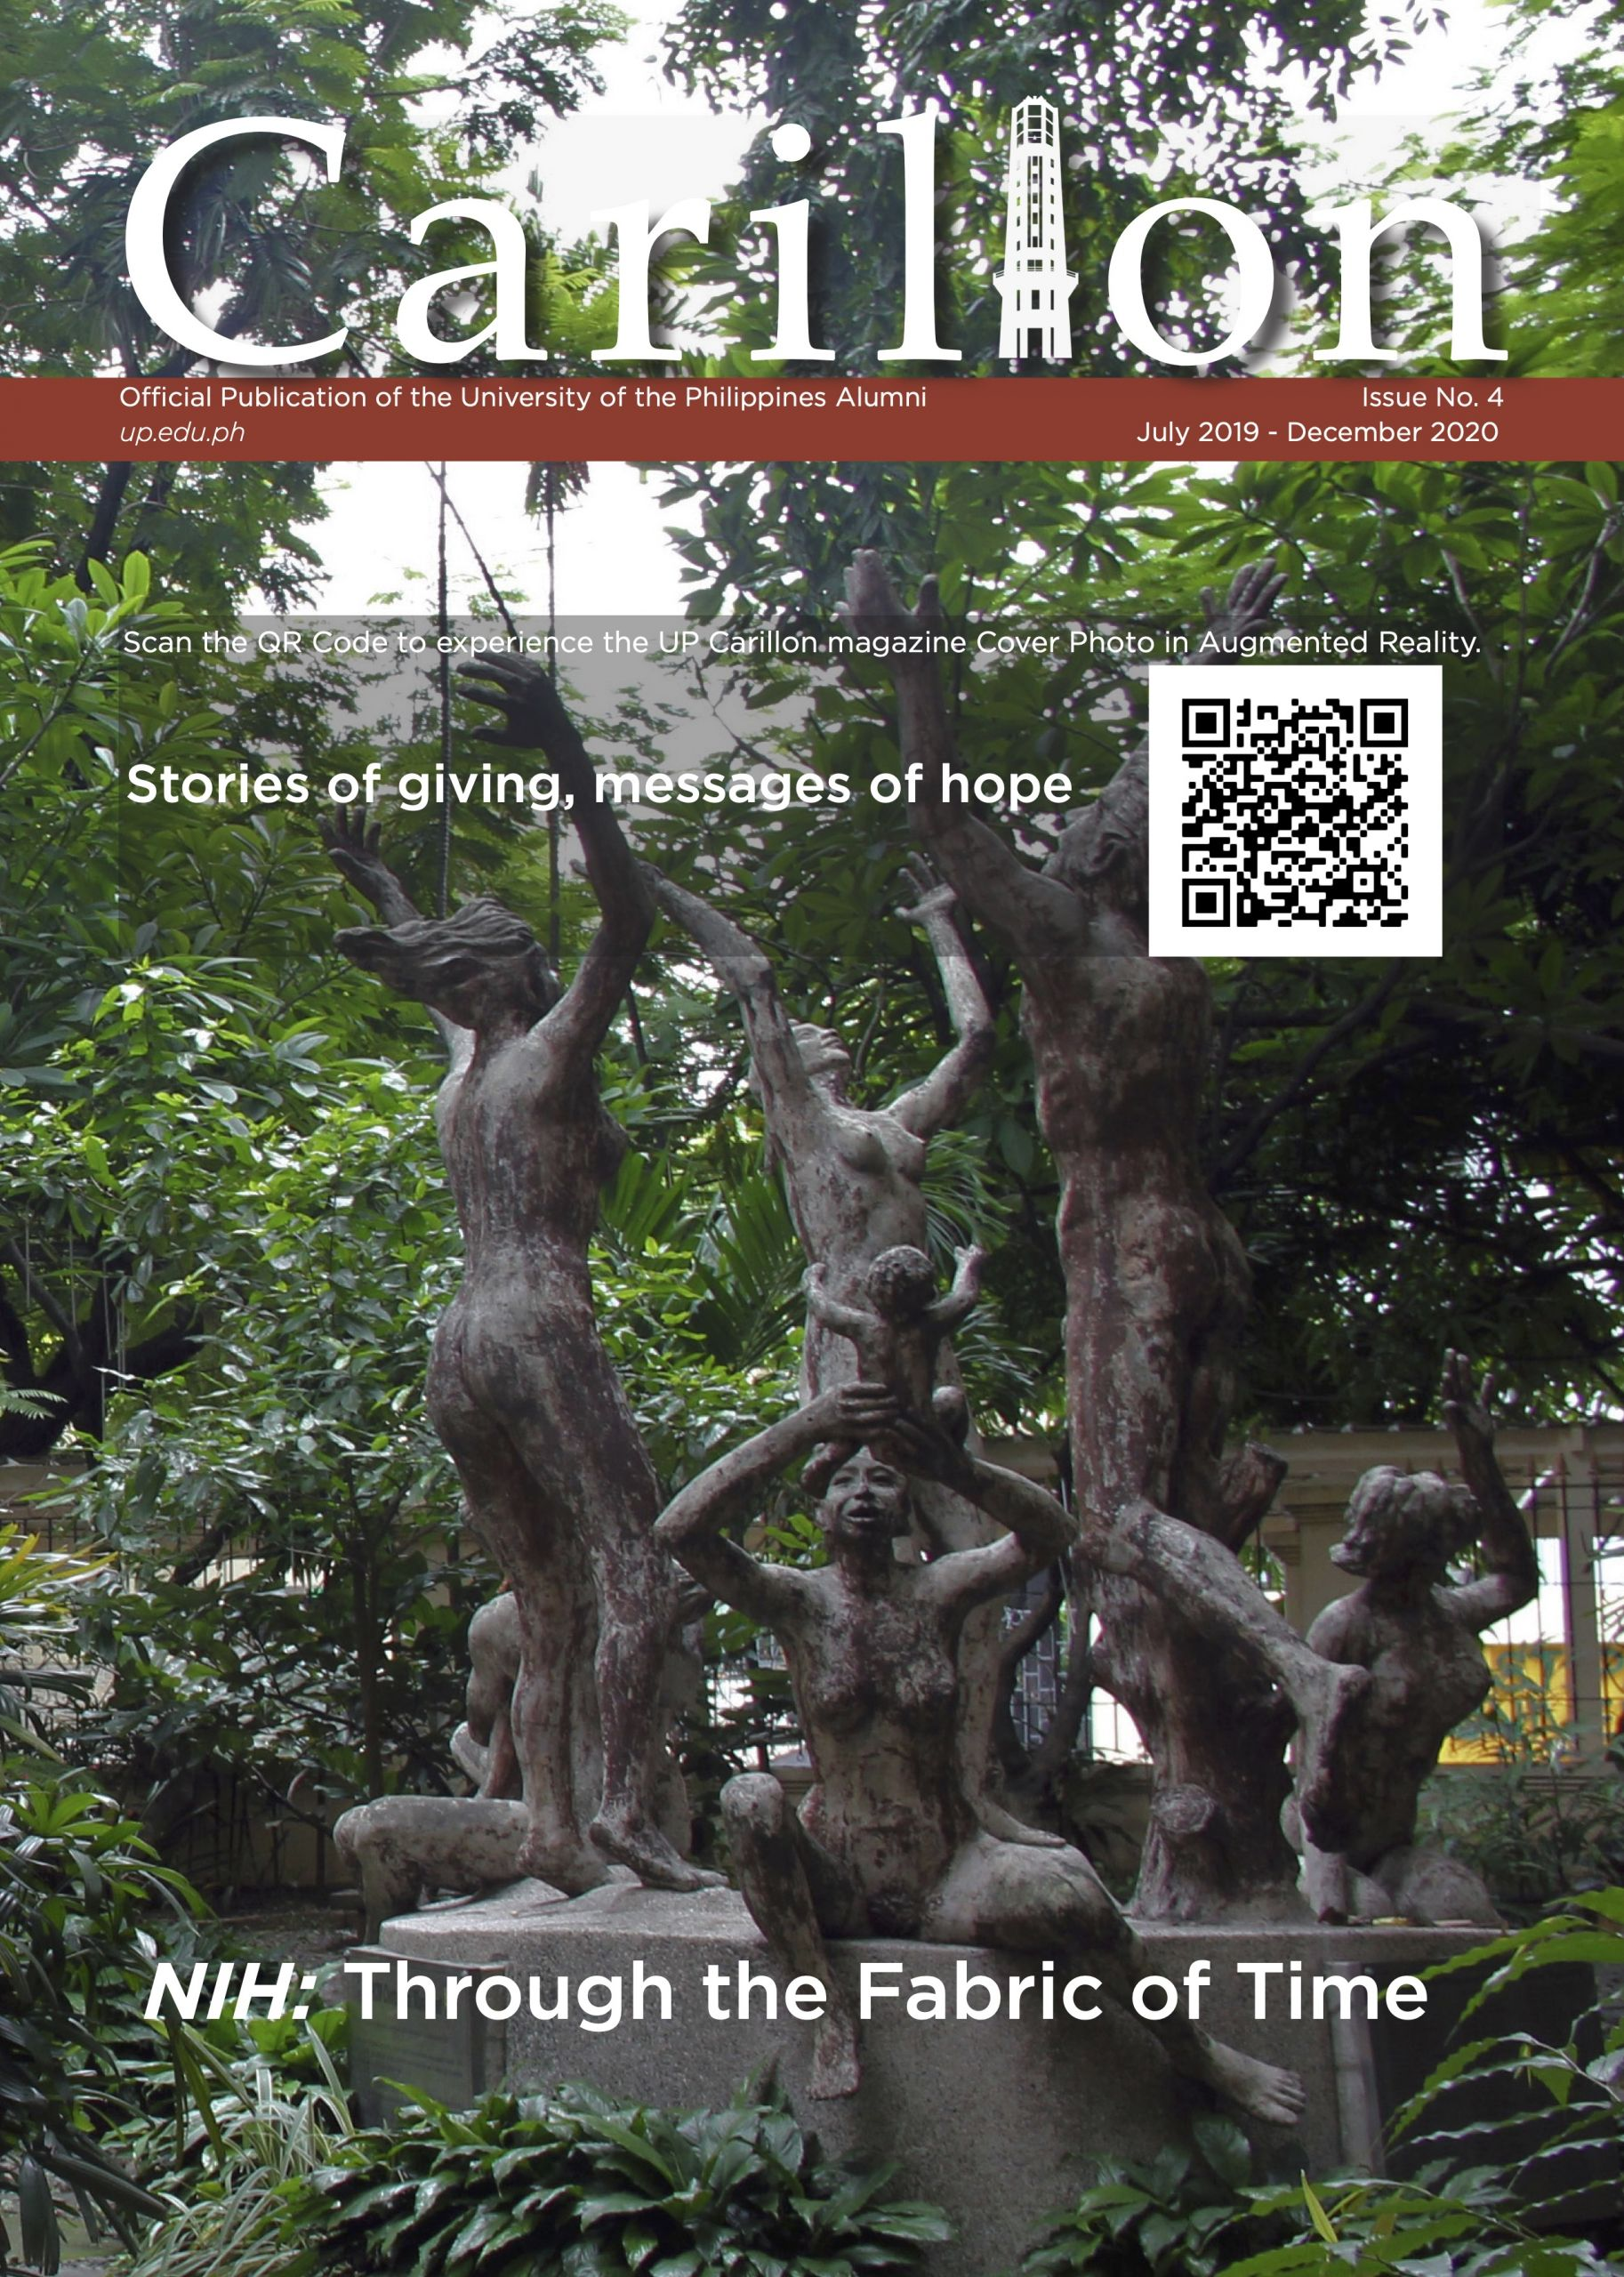 UPS-OAR releases 4th issue of the UP Carillon Magazine